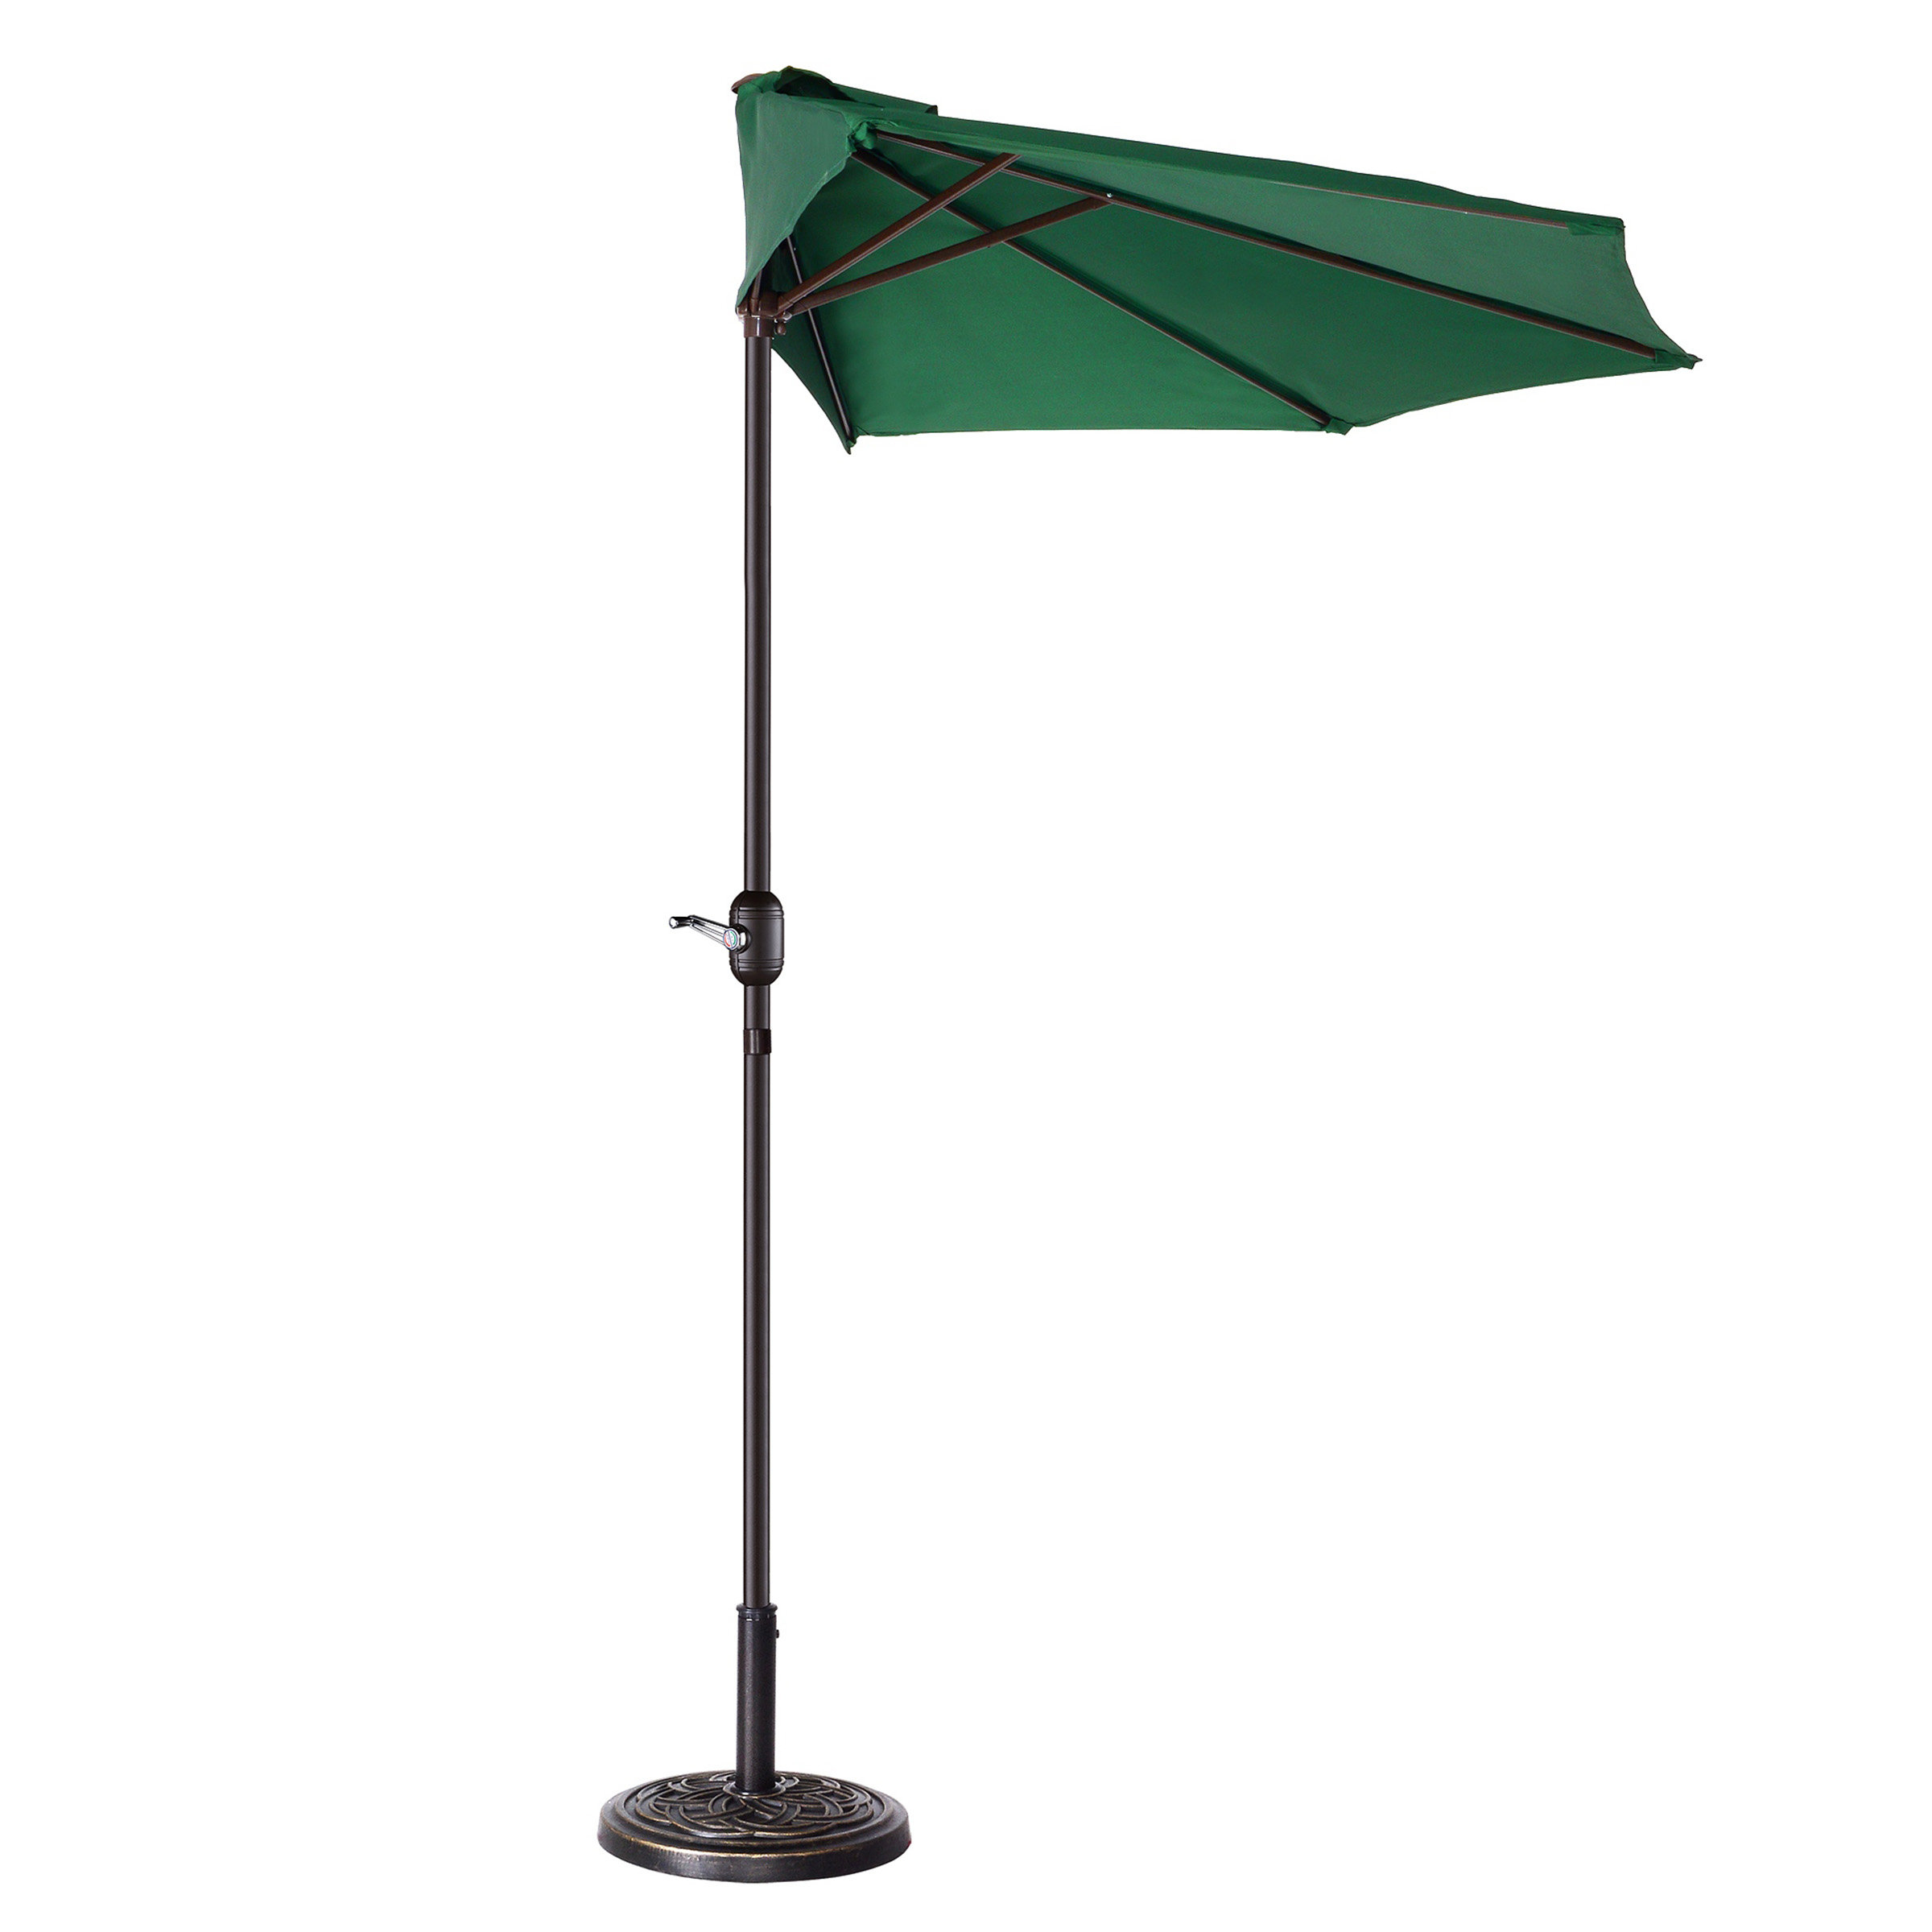 Preferred Dade City North Half Market Umbrellas Within Colburn Half 9' Market Umbrella (View 18 of 20)